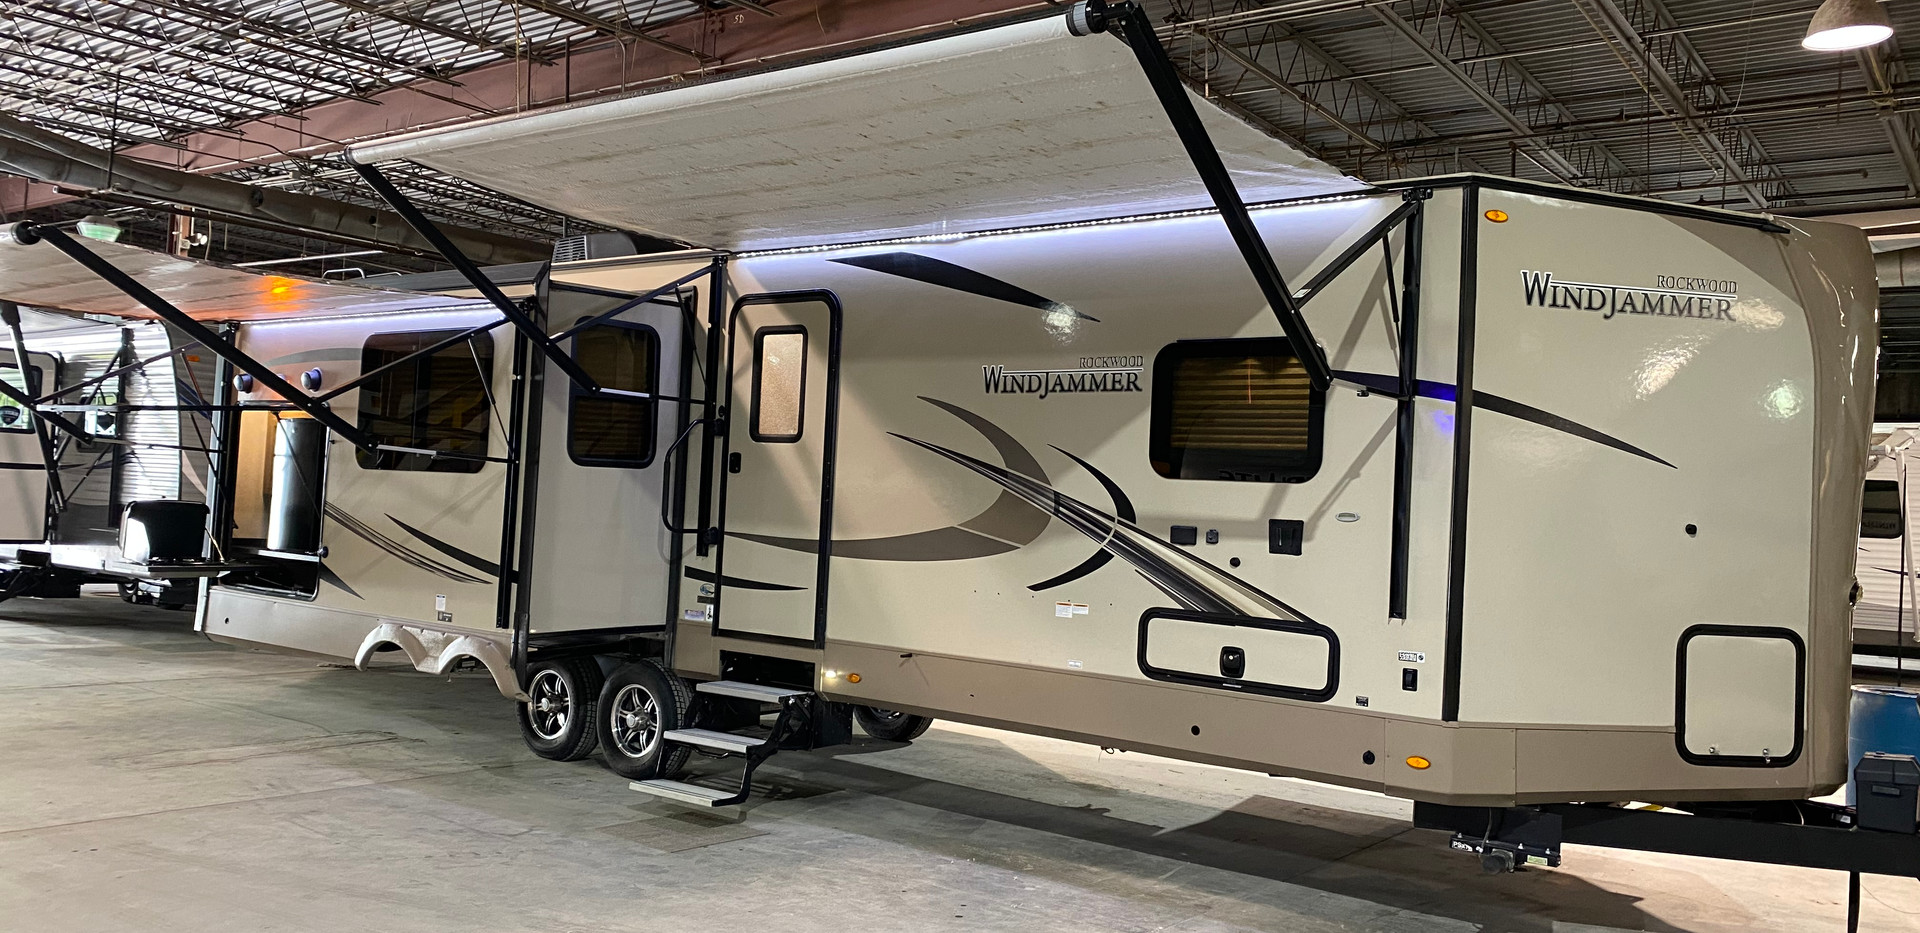 2019 Forest River Rockwood Windjammer. Model number is 3029V. Camper is 30 feet long. Dry weight is 8200 pounds. Has three slideouts. Two electric awnings, and electric stabilizer jacks as well! Outside kitchen with a grille and mini fridge. Inside is a beautiful open layout! L shaped countertop. A fireplace and big TV. Couches are messaging and heated! Bedroom has a King size bed in it and has a closet up front. Bedroom has a stand up shower. Camper has a Clean title! Priced at $26,500.